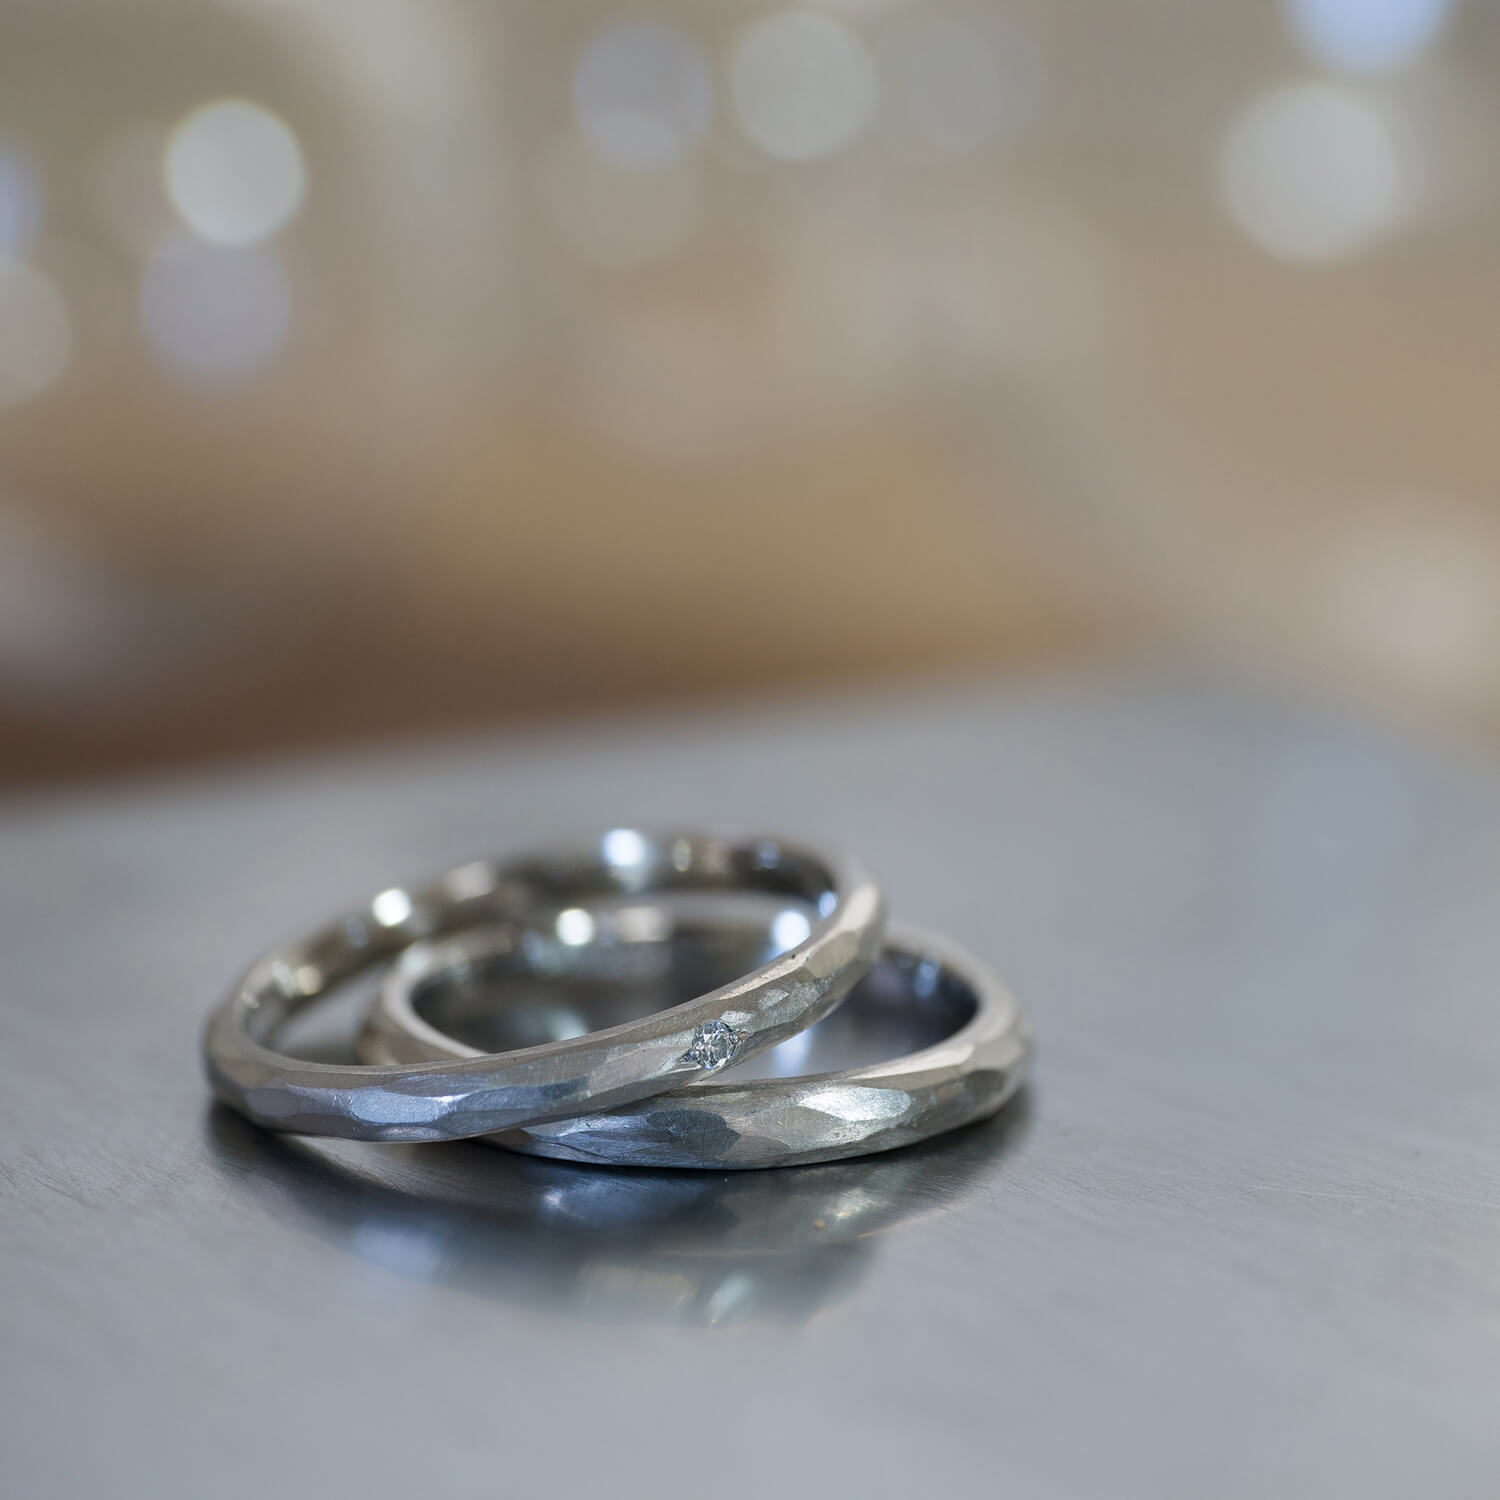 2.0mm and 2.3mm platinum with hammered texture #屋久島でつくる結婚指輪